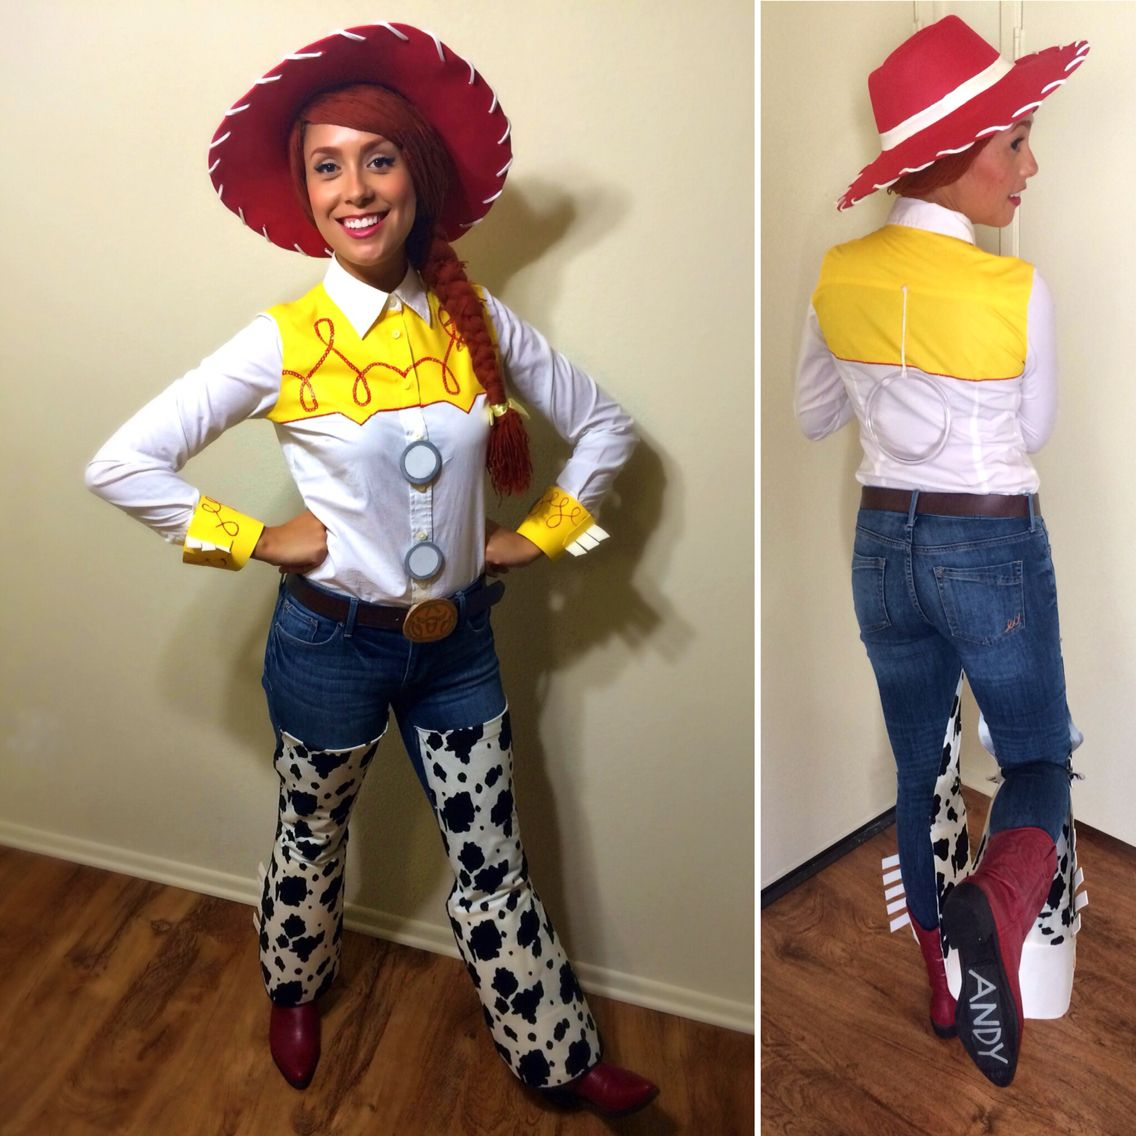 Went All Out This Year And Made My Own Diy Jessie The Cowgirl